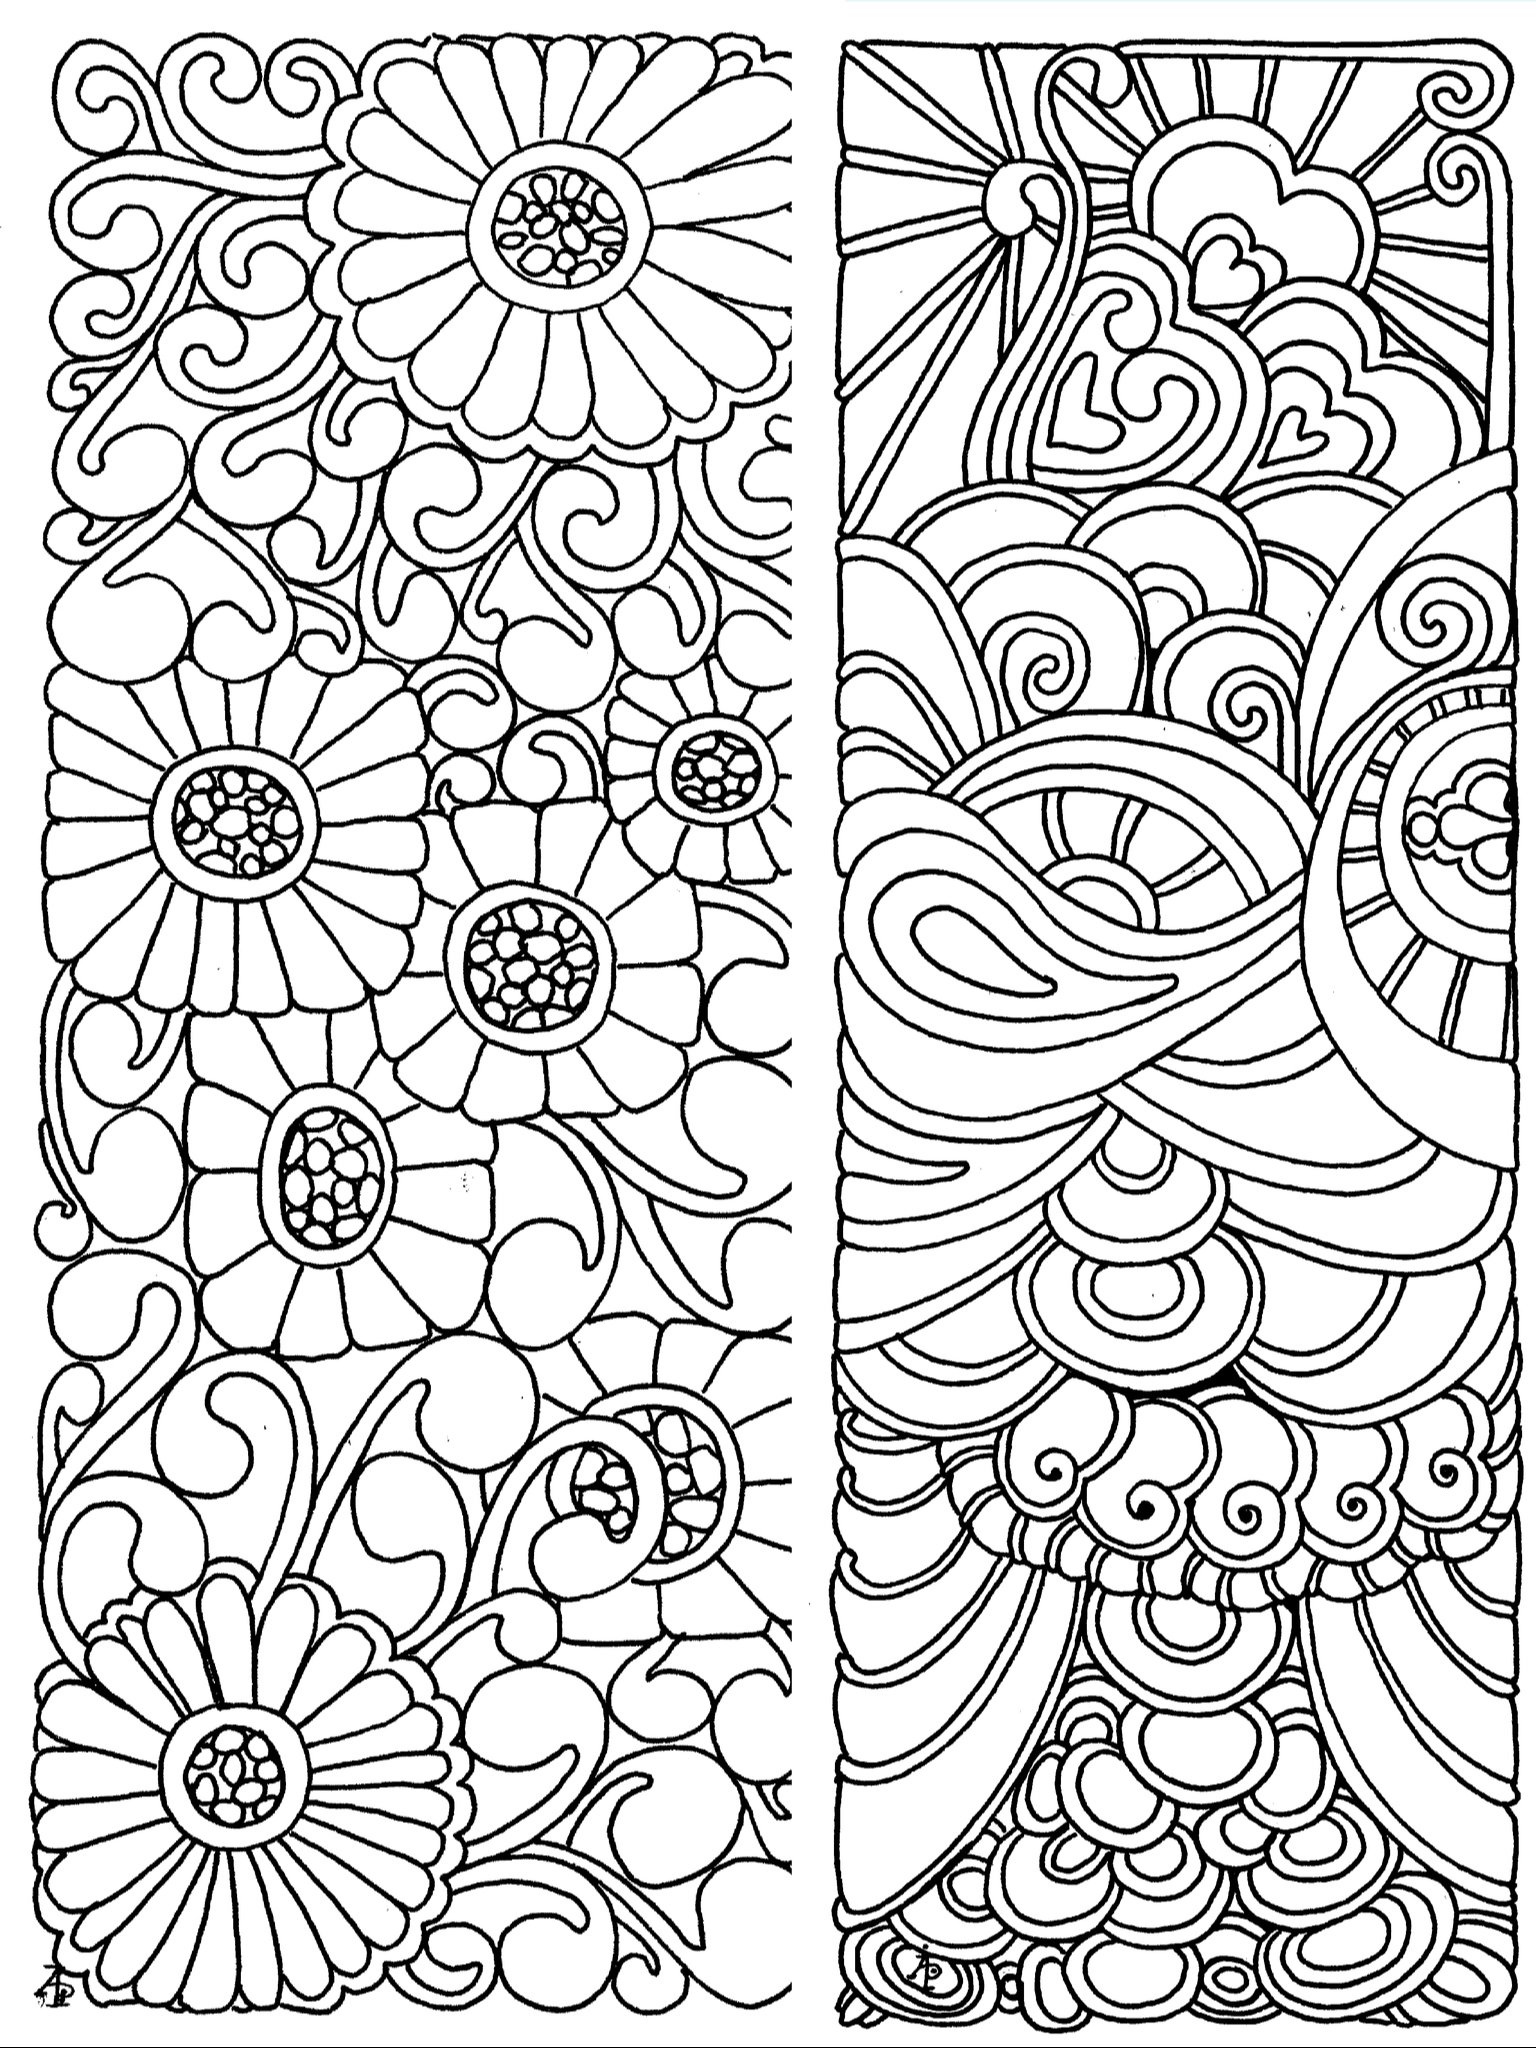 Bookmarks Coloring Page | Color: Bookmarks | Coloring Pages